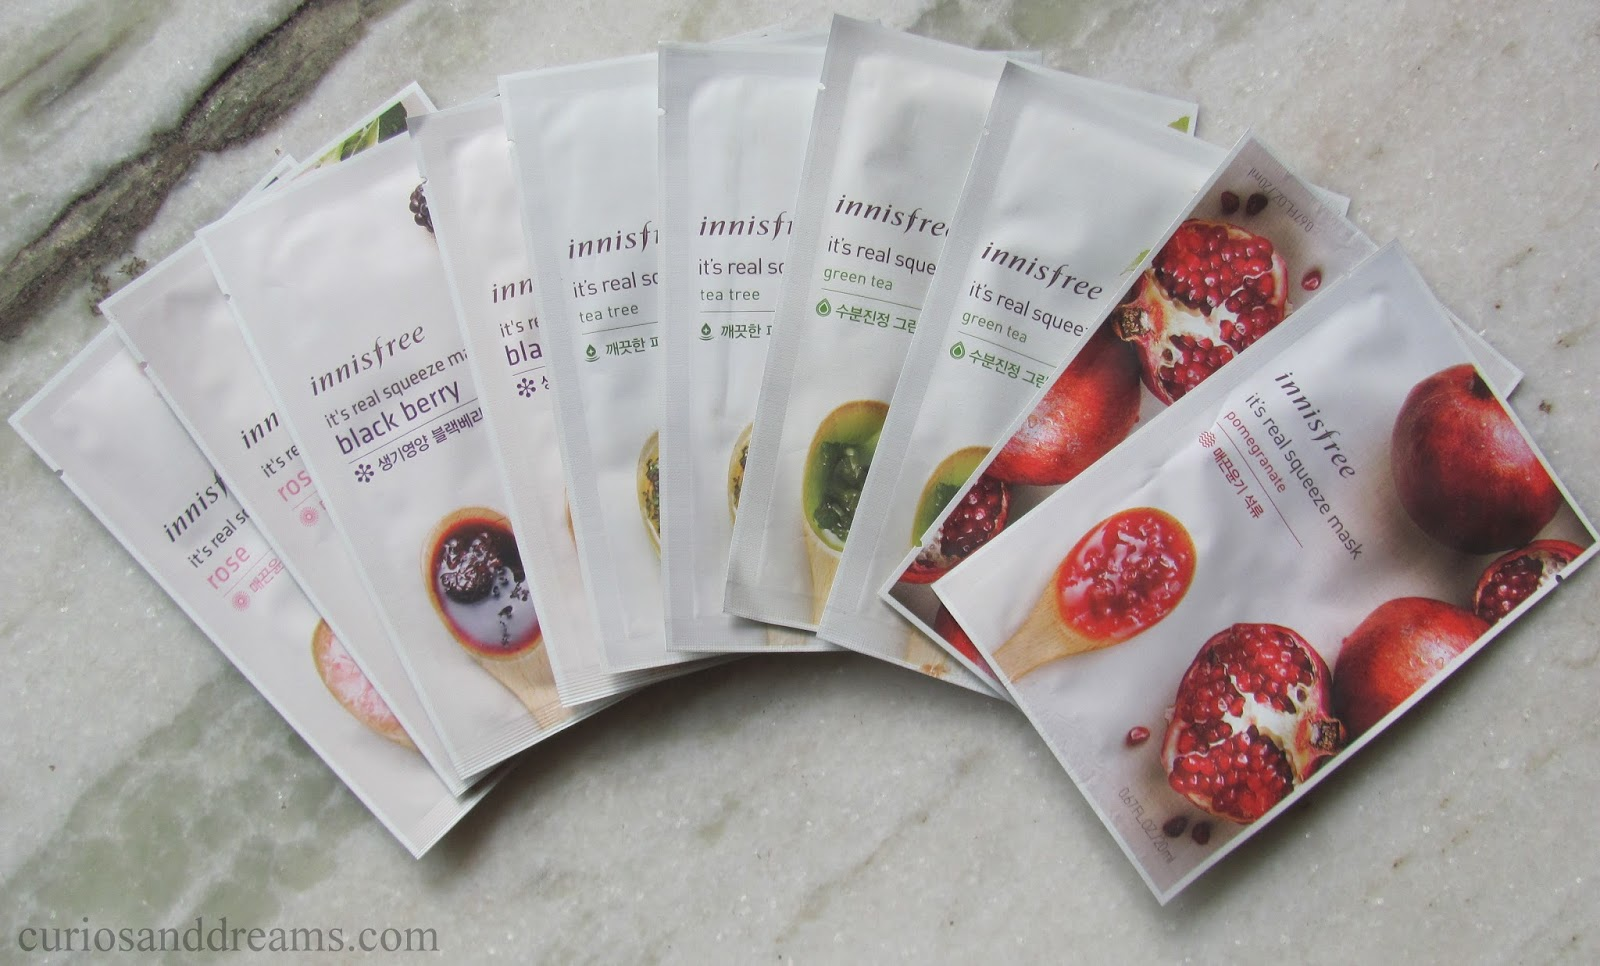 Curios And Dreams Makeup Beauty Product Reviews Innisfree Real Squeeze Mask Black Berry Its Review Sheet Masks Always Feel A Bit Of Novelty They Are Good Way To Pamper Yourself Plus Super Handy While